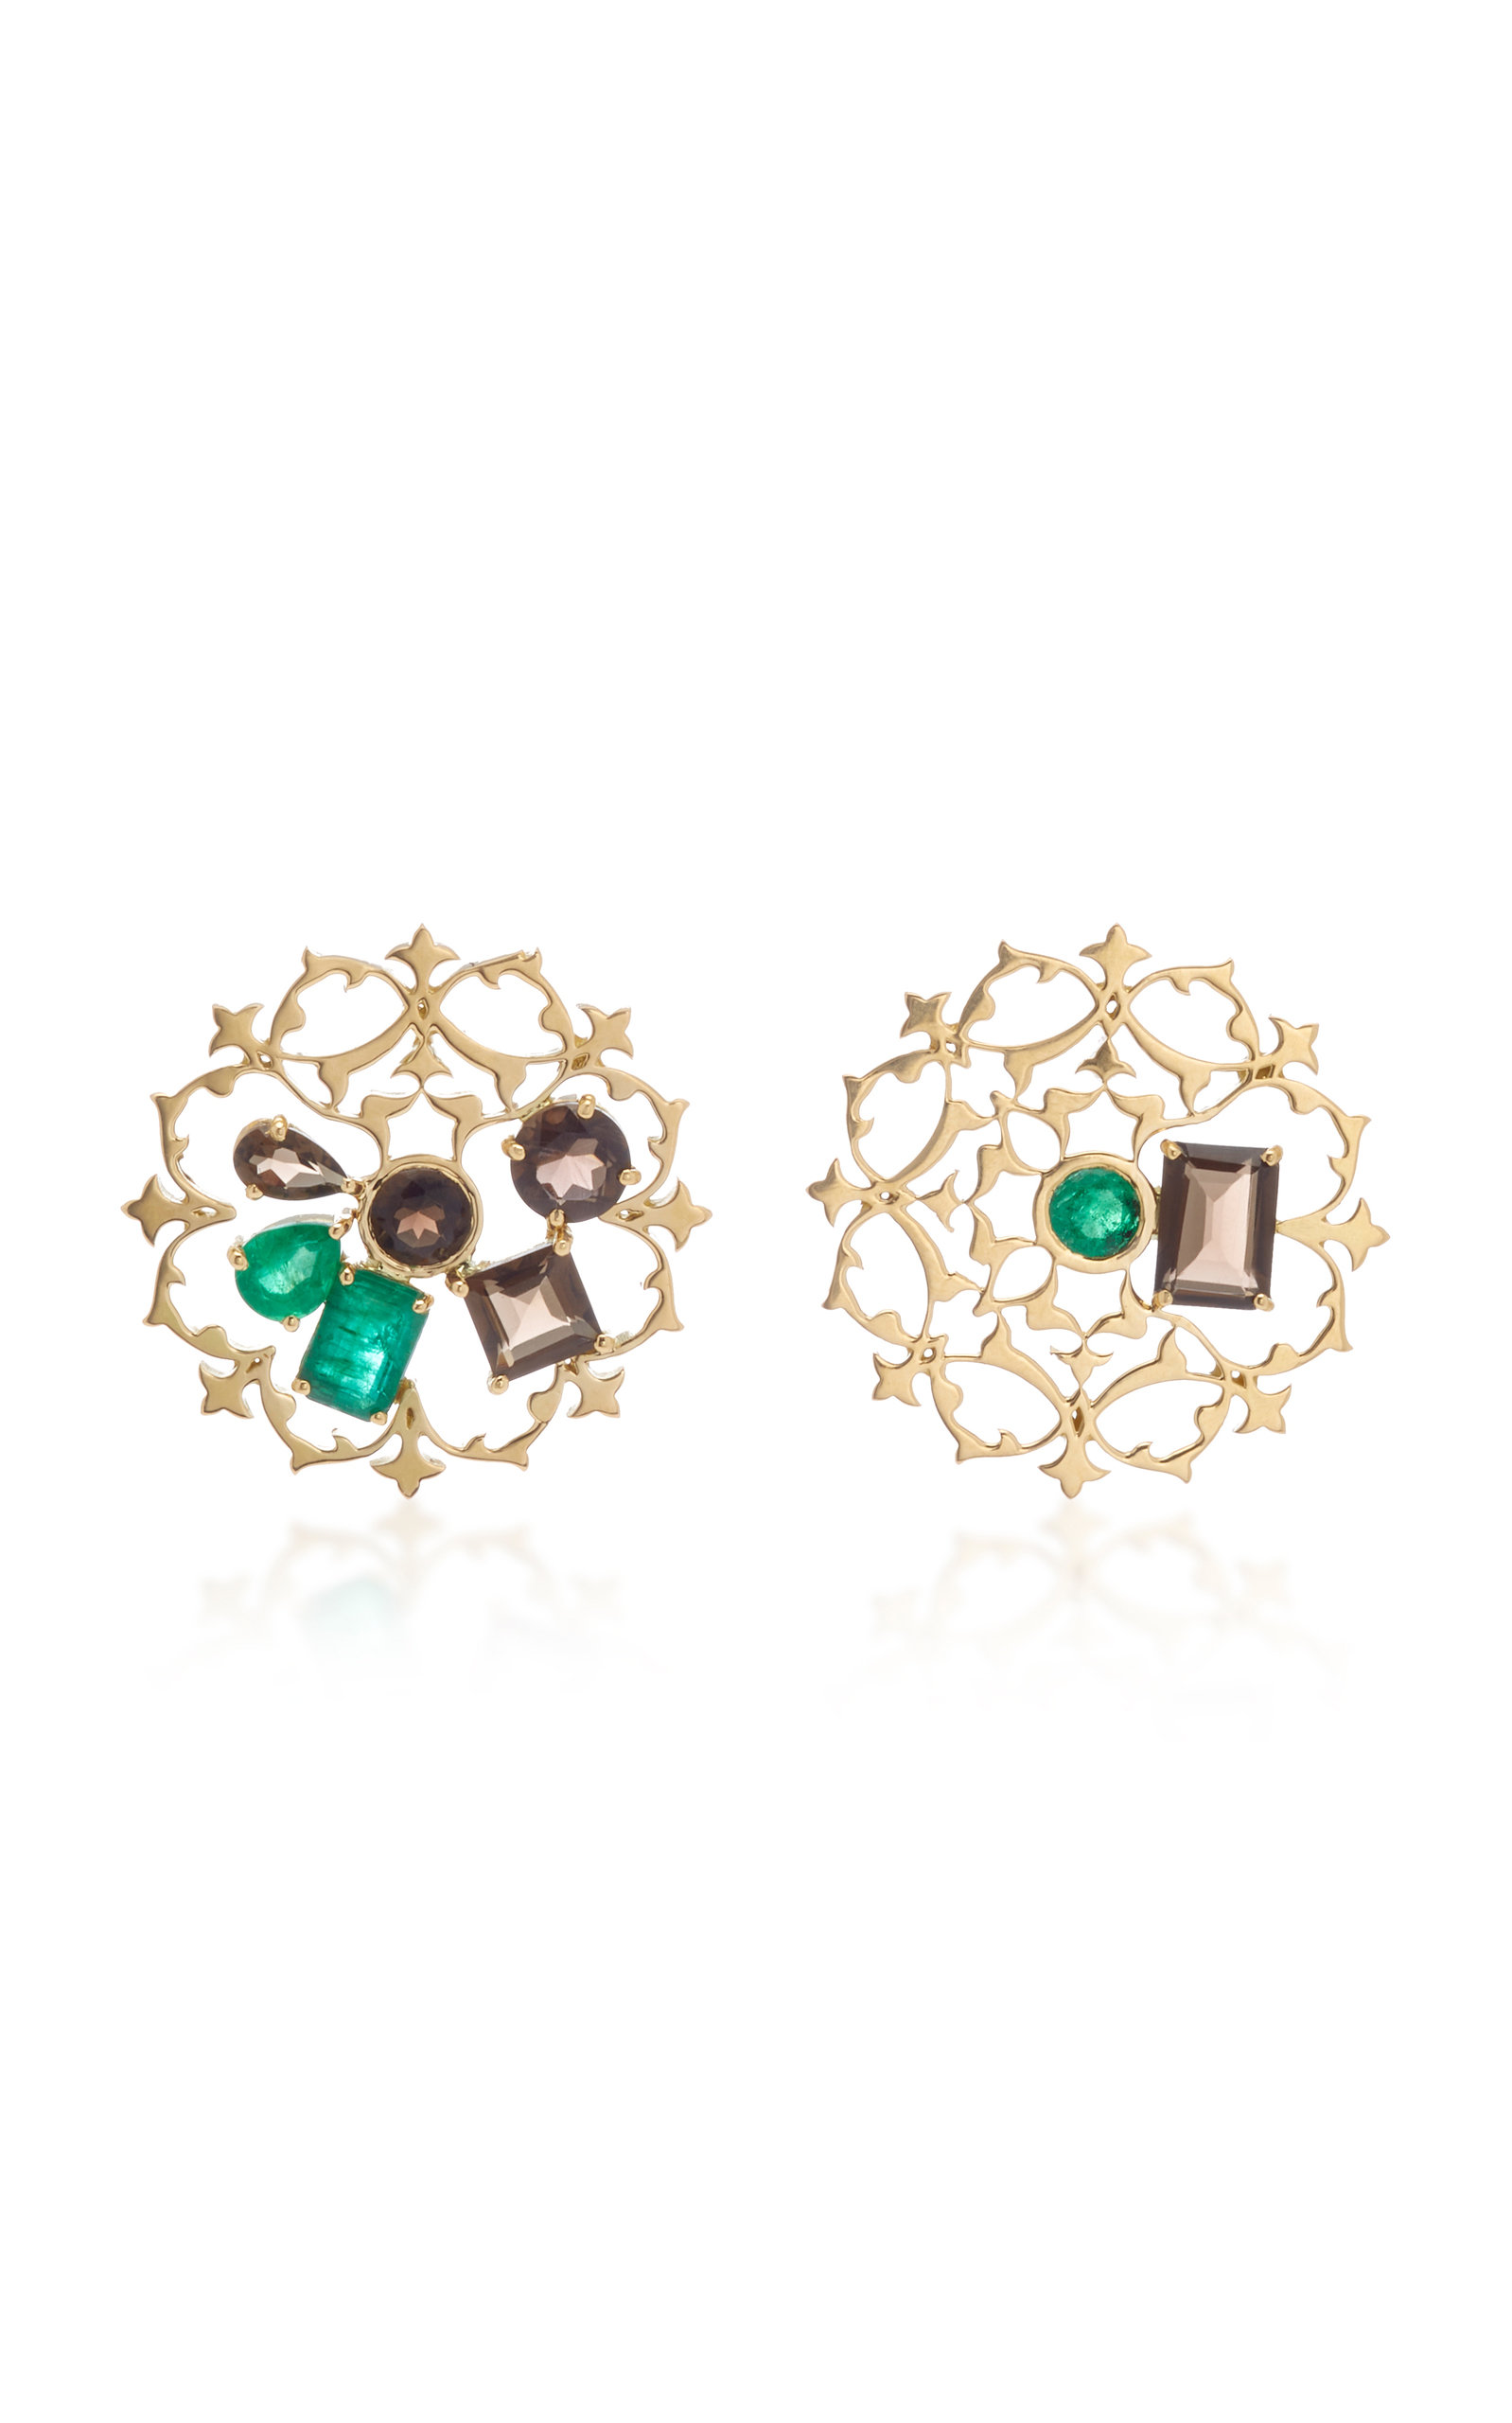 DONNA HOURANI Tranquility Mismatched 18K Gold, Quartz And Emerald Earrings